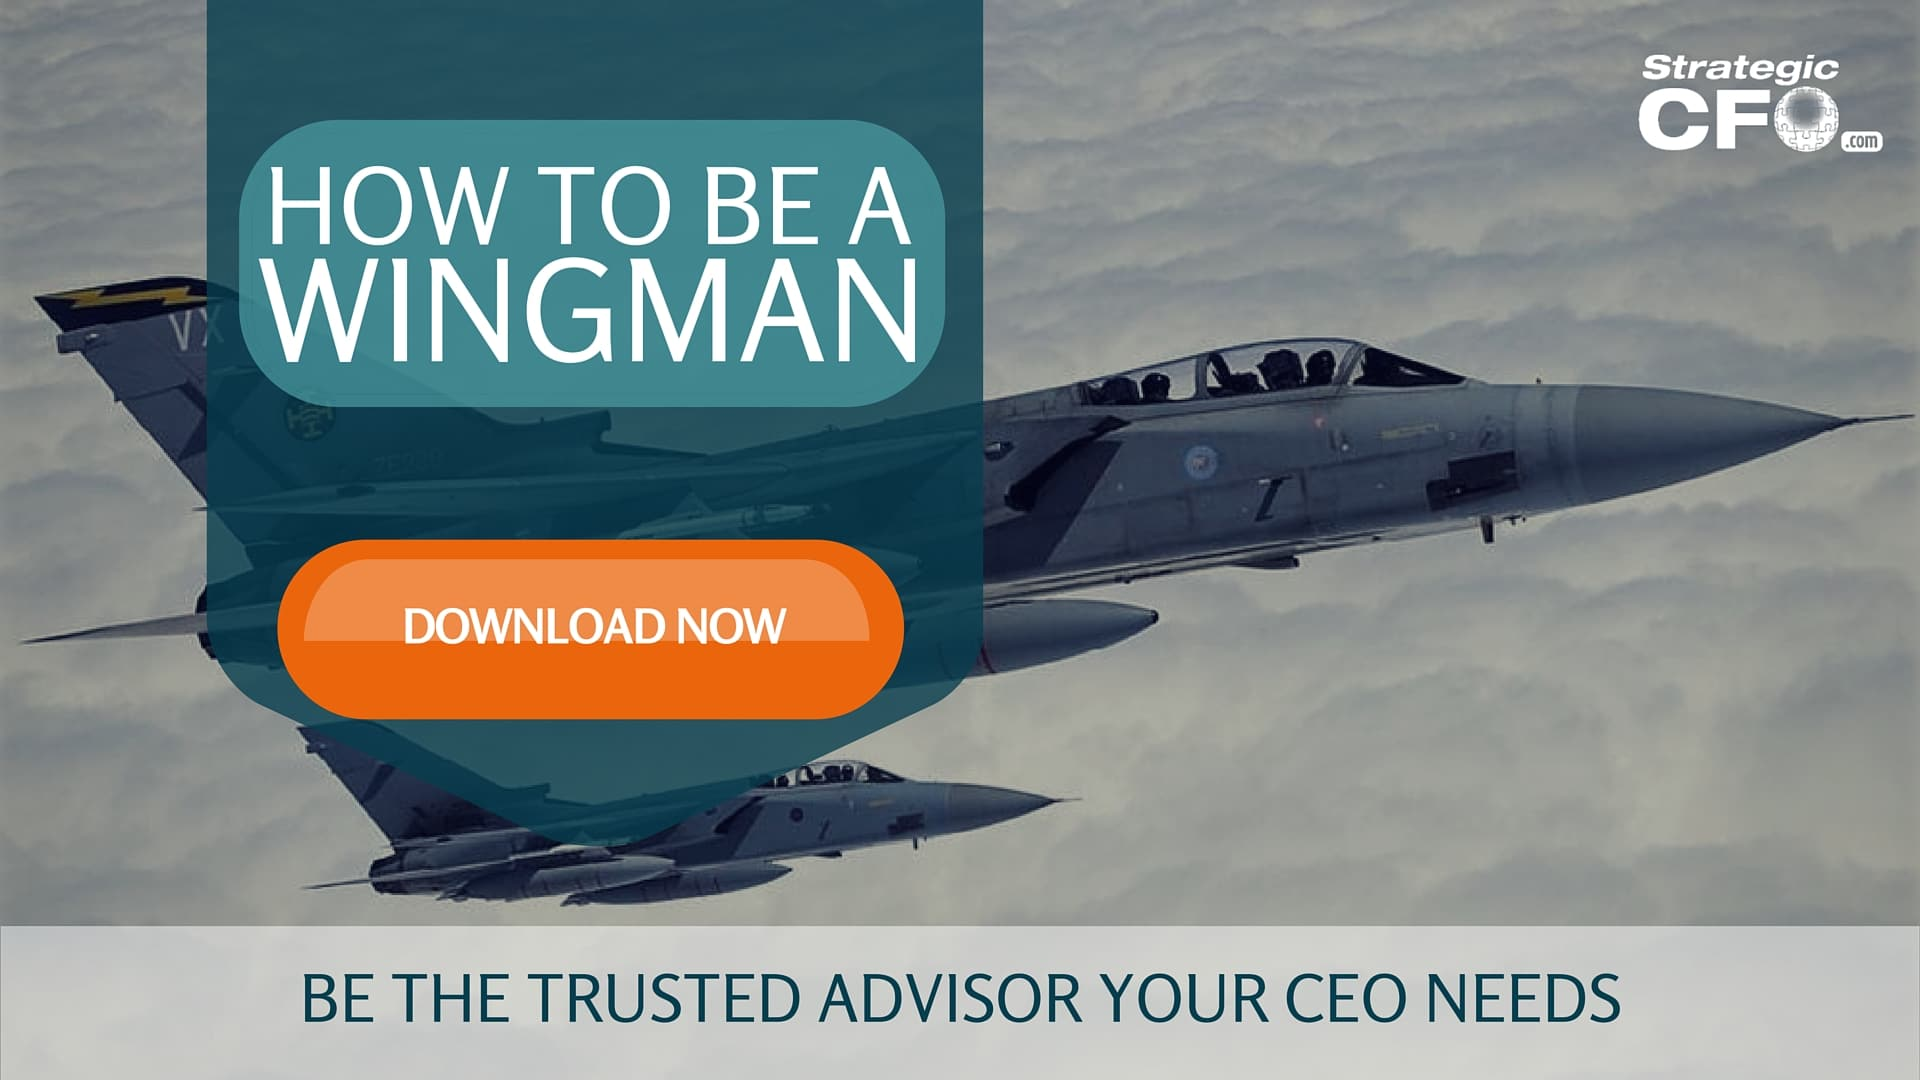 CEOs Want a Wingman